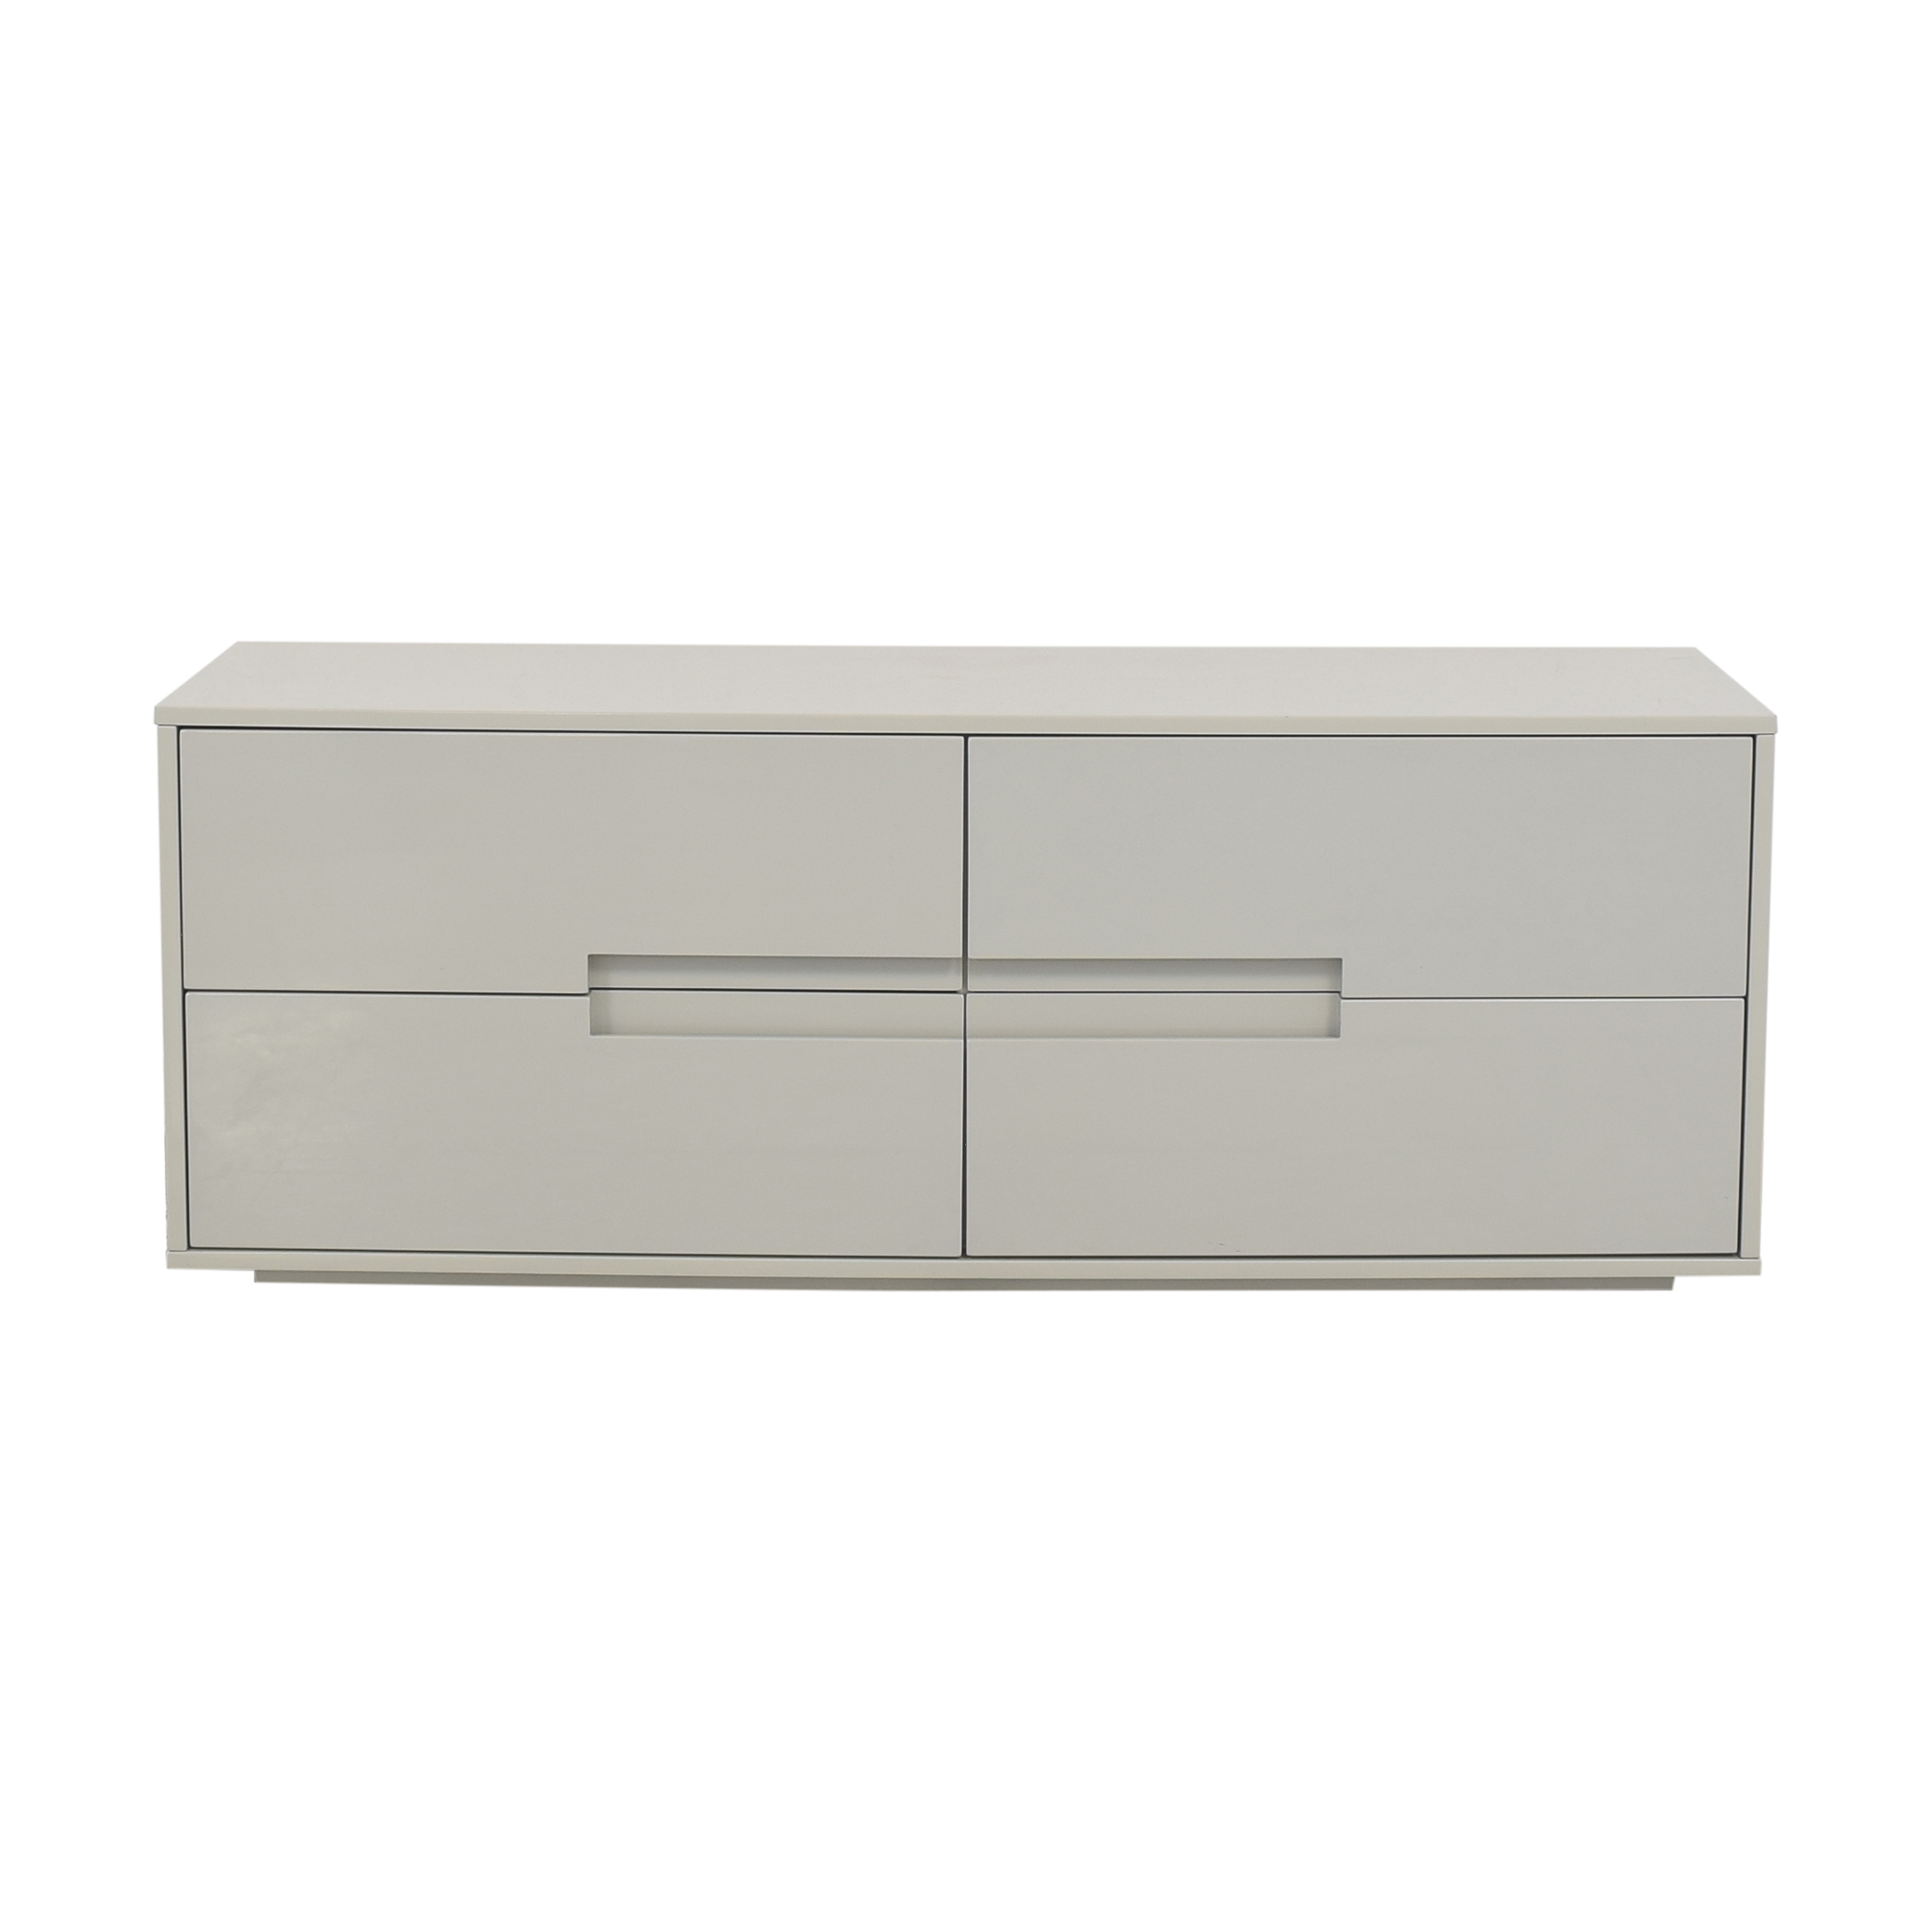 CB2 Latitude Low Dresser sale